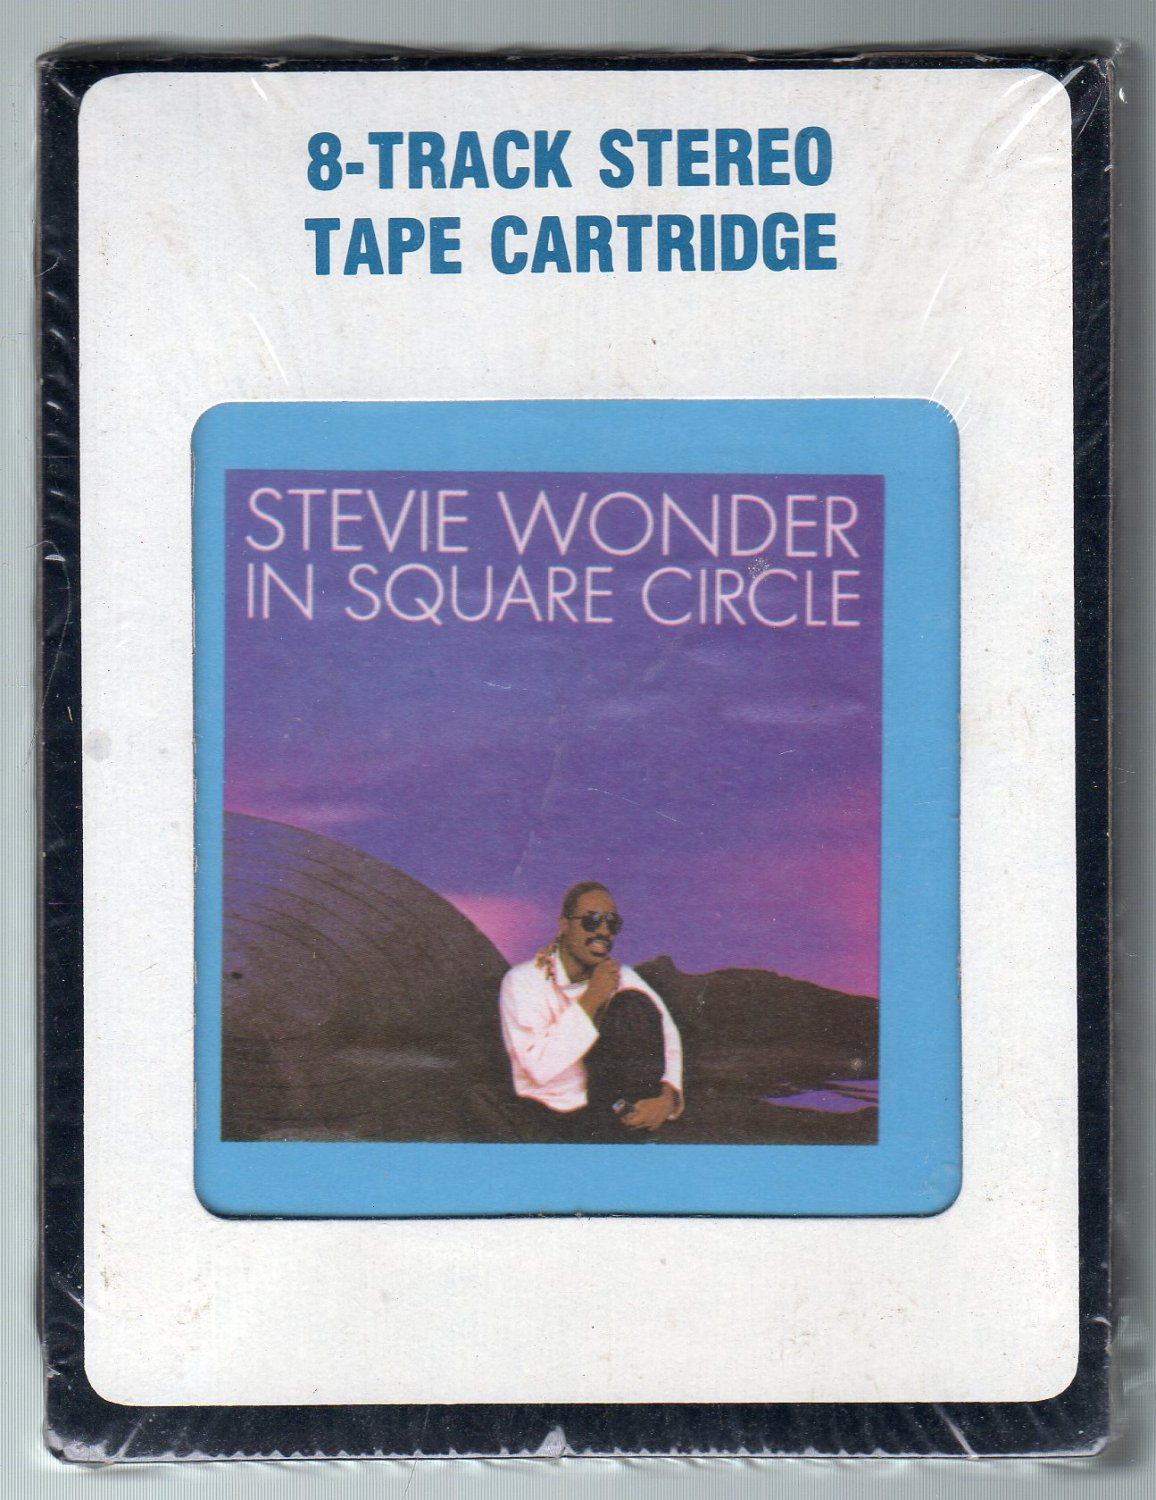 Stevie Wonder - In Square Circle 1985 CRC Sealed A52 8-track tape